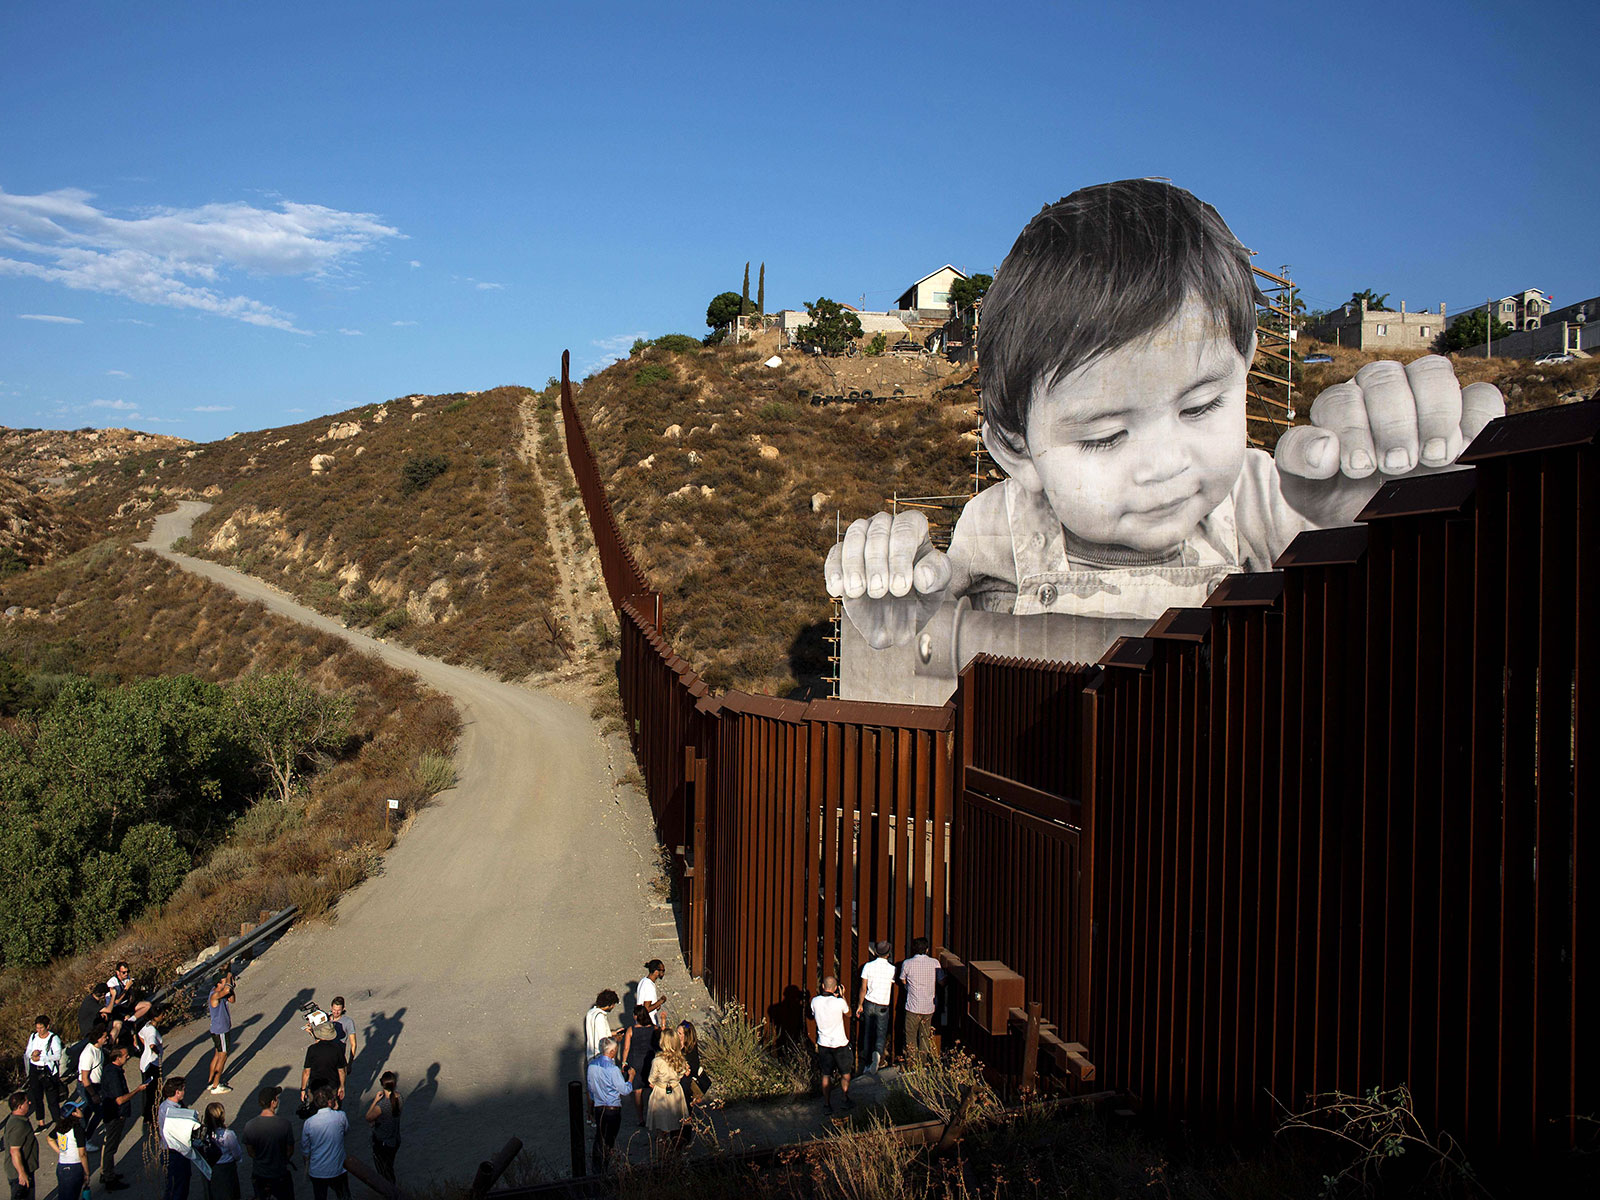 tacate work of art at mexican border